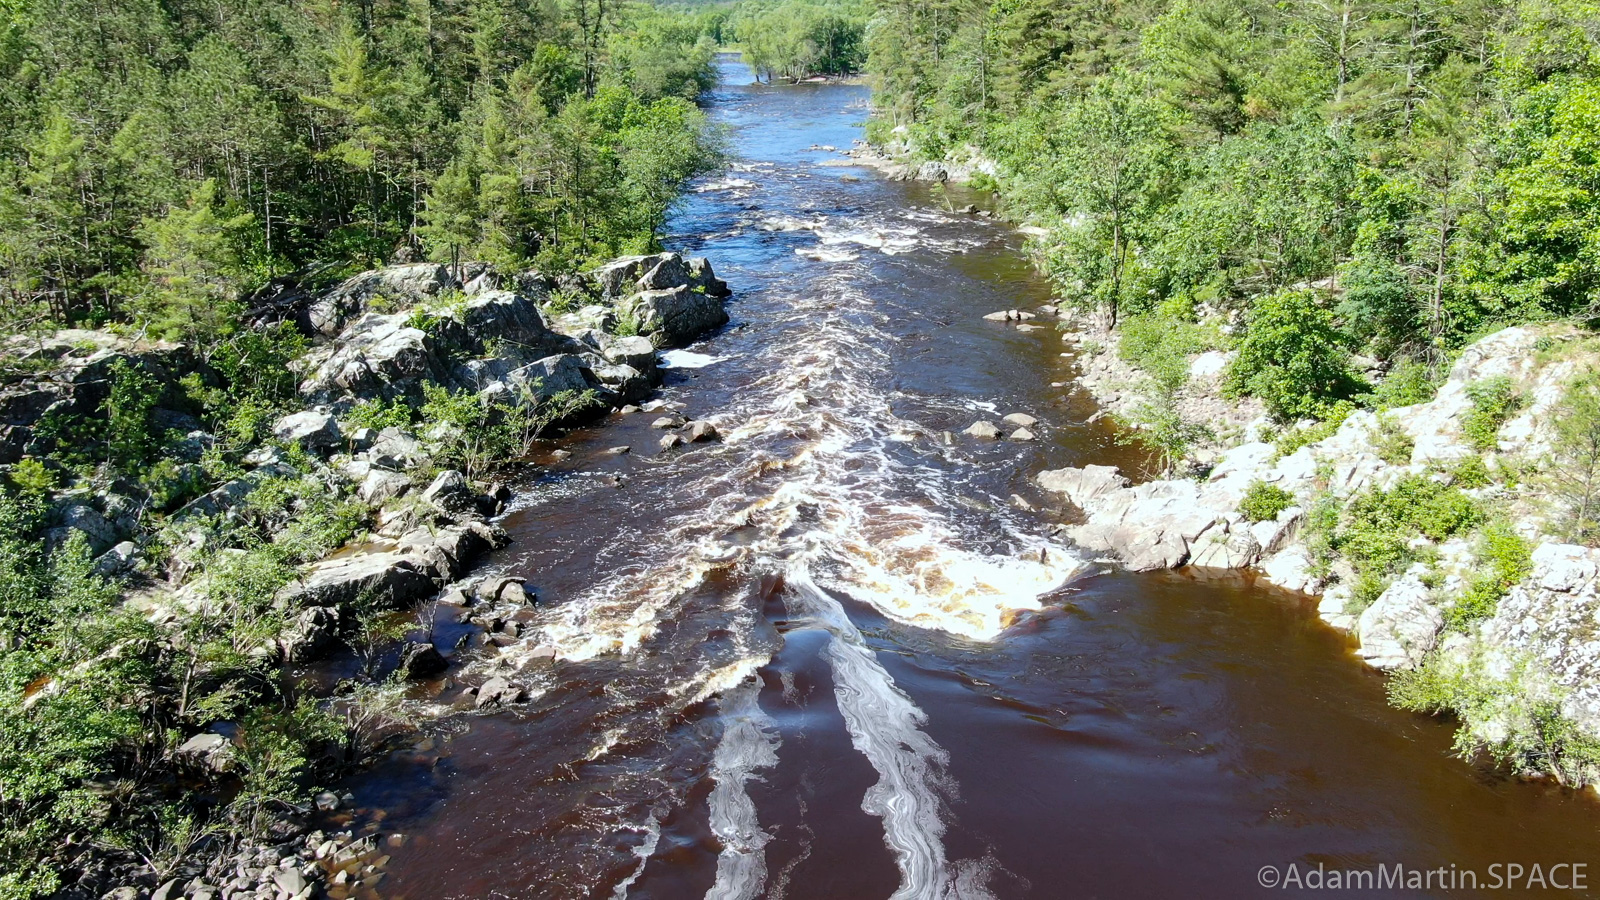 Black River Falls - Hwy K Rapids - Aerial view of largest drop looking downstream